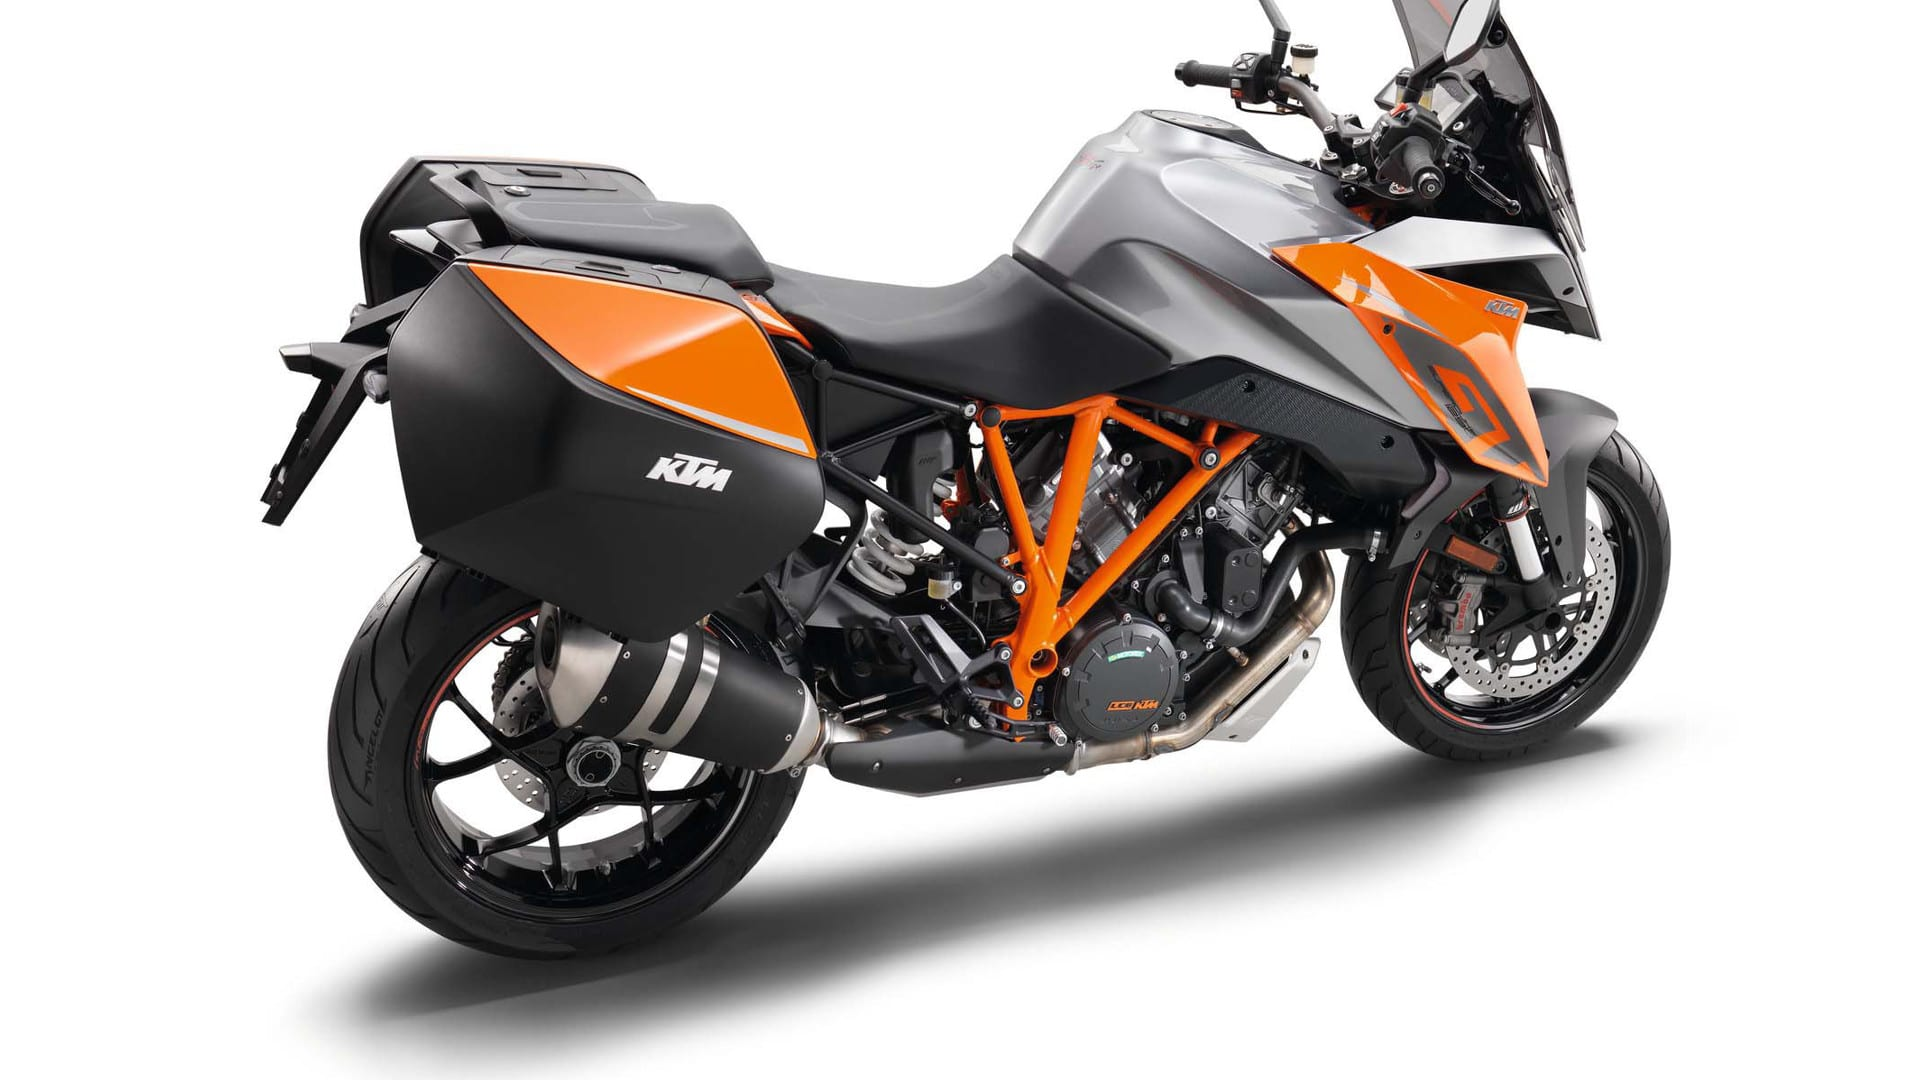 ktm launches much anticipated 1290 super duke gt motorcycle life. Black Bedroom Furniture Sets. Home Design Ideas